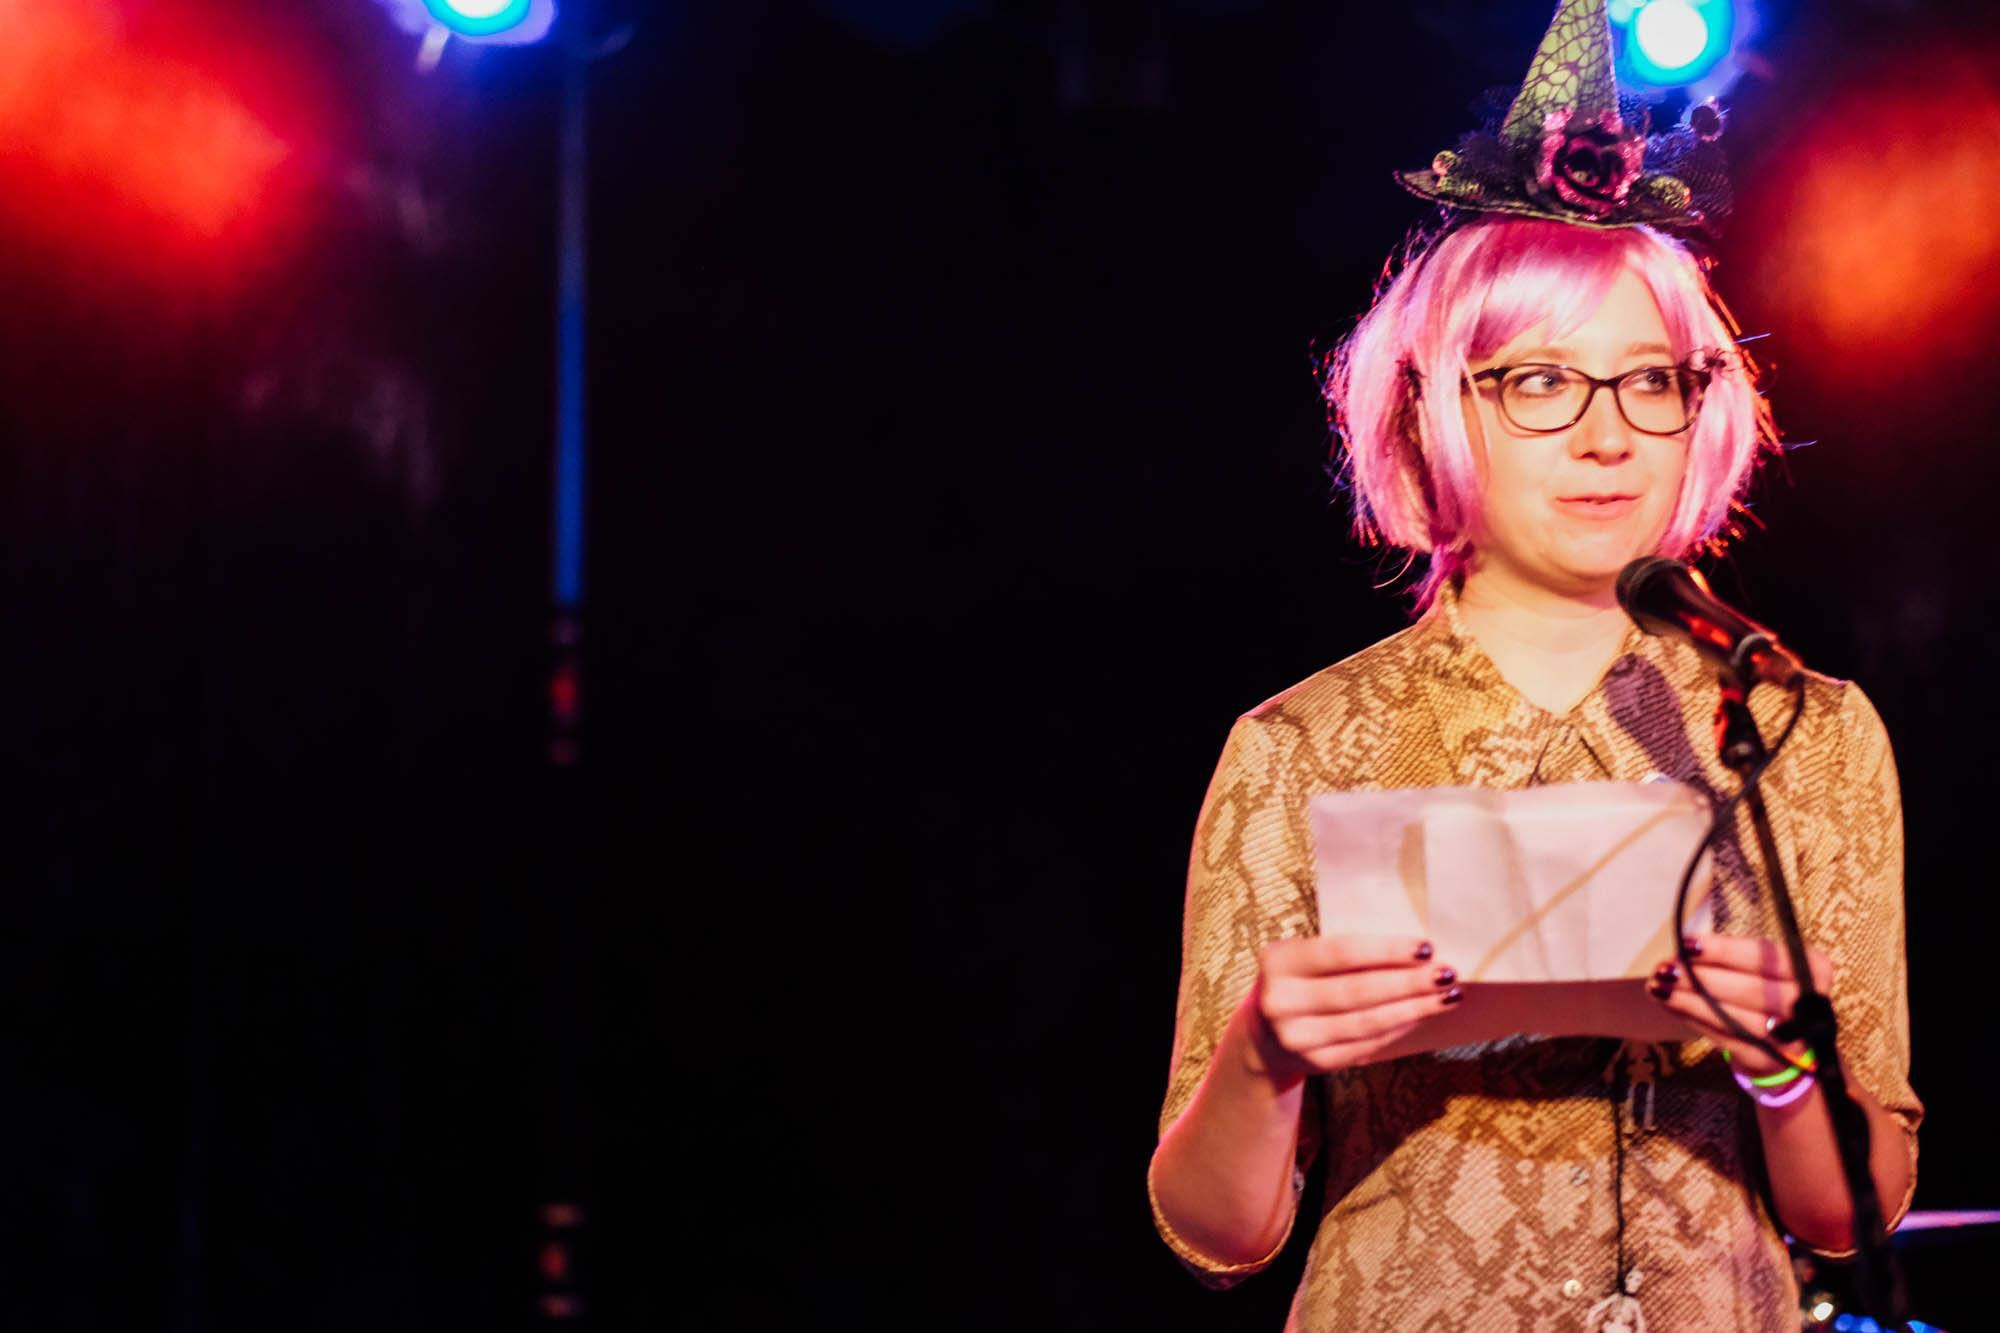 Rebecca Elliott  {she/her}  writing, performance art, printmaking, sculpture, publishing/community-building   I'm an artist/publisher/writer living in Chicago with 50 cats. Publishing projects are mainly through Meekling Press, which I co-founded in 2012. meeklingpress.com Also: rebaelliott.com   Instagram  /  Twitter